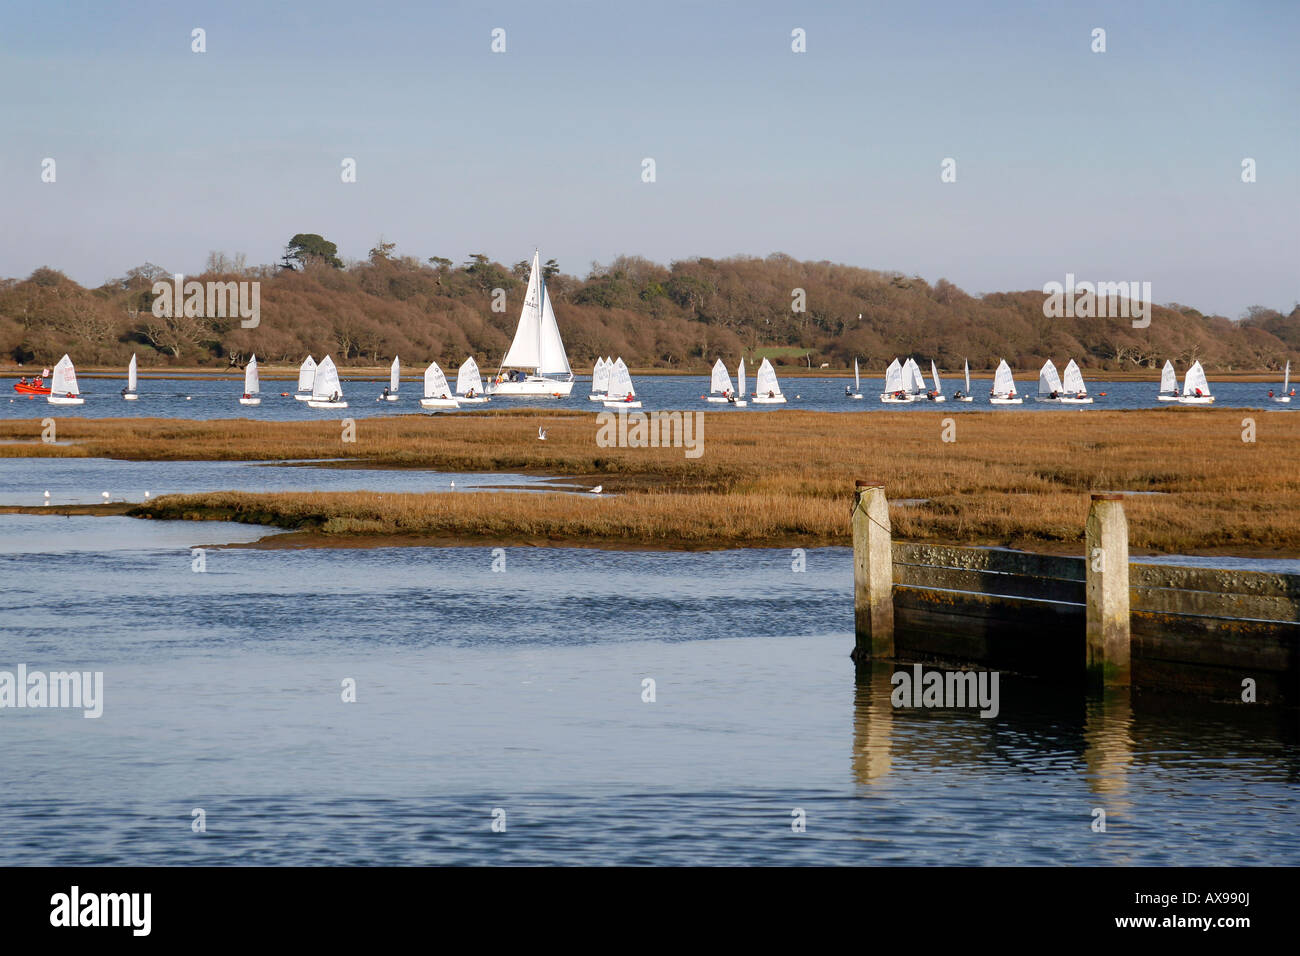 Dinghies sailing on the Lymington River with safety boat, Hampshire - Stock Image